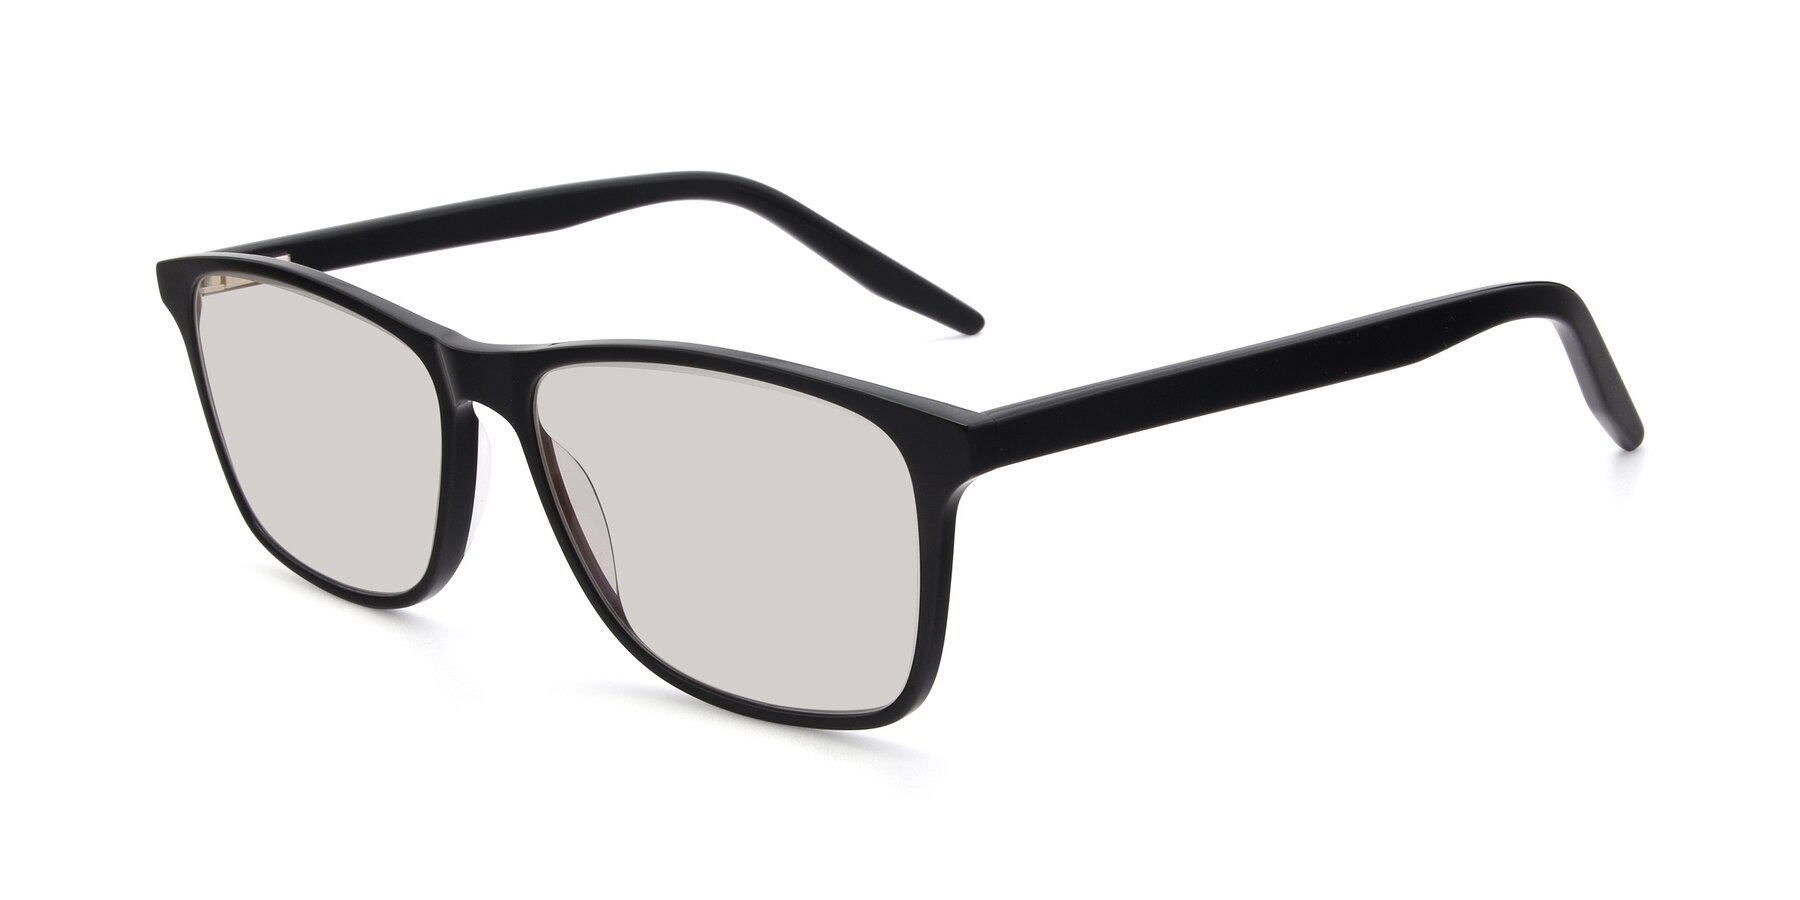 Angle of 17500 in Black with Light Brown Tinted Lenses